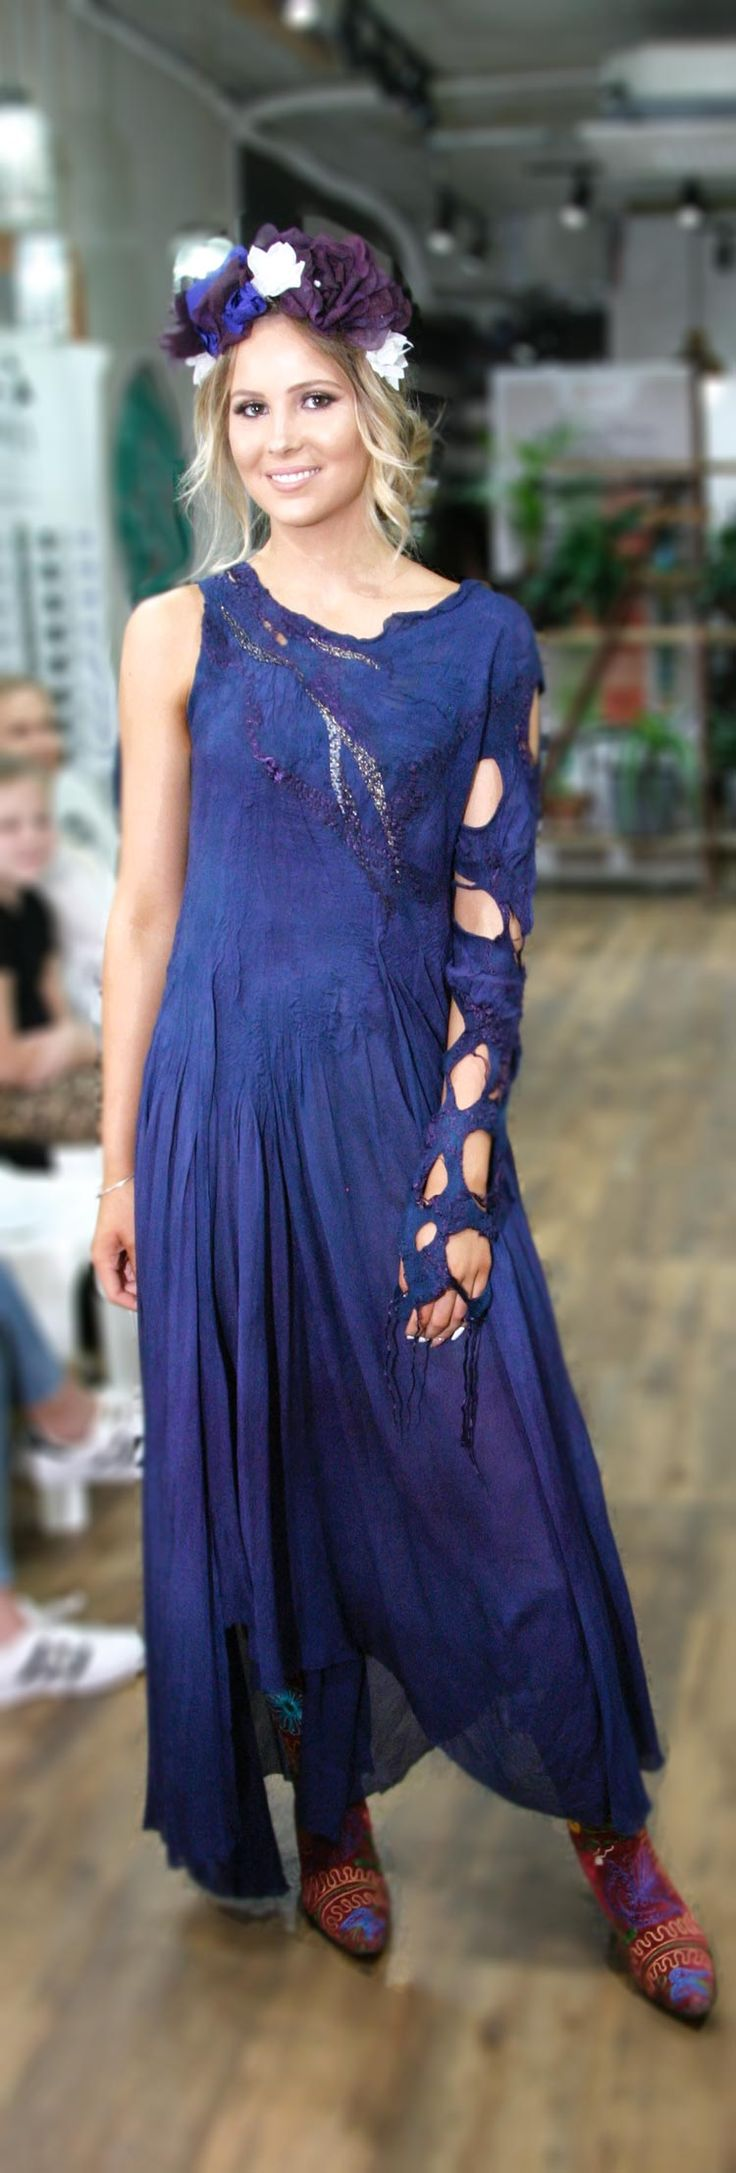 Buy fashion bohostyle nuno felted dress by Vera Alexanderova. #fashion #uniquedesign #uniquedress #unique #boho #bohochic #bohostyle #bohowedding #nuno #nunofelt #nunofelting #nunodress #purple #purpledress